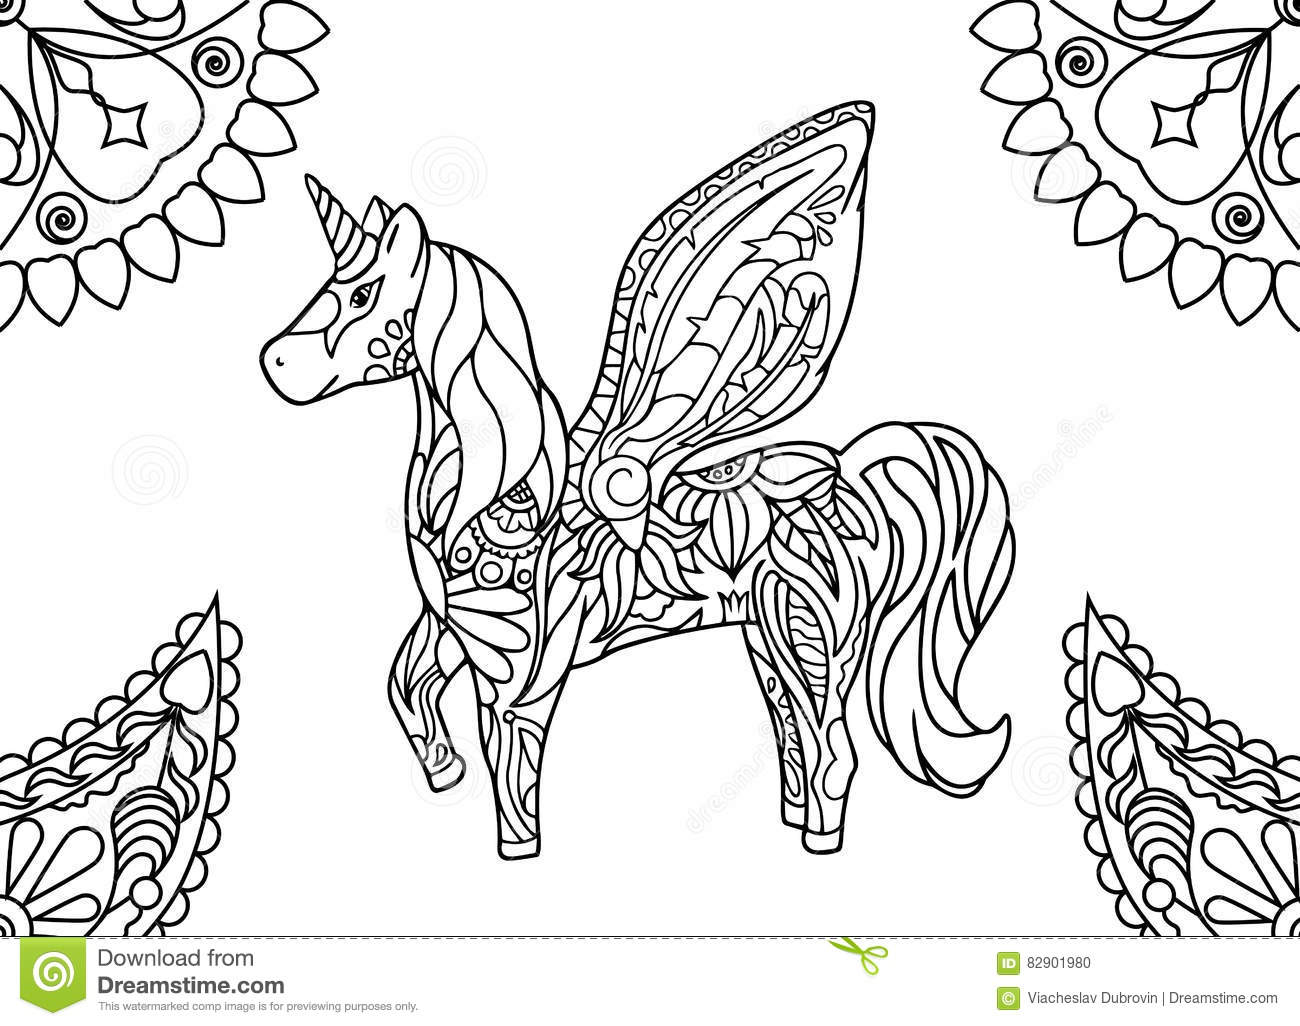 Unicorn with mandalas coloring page